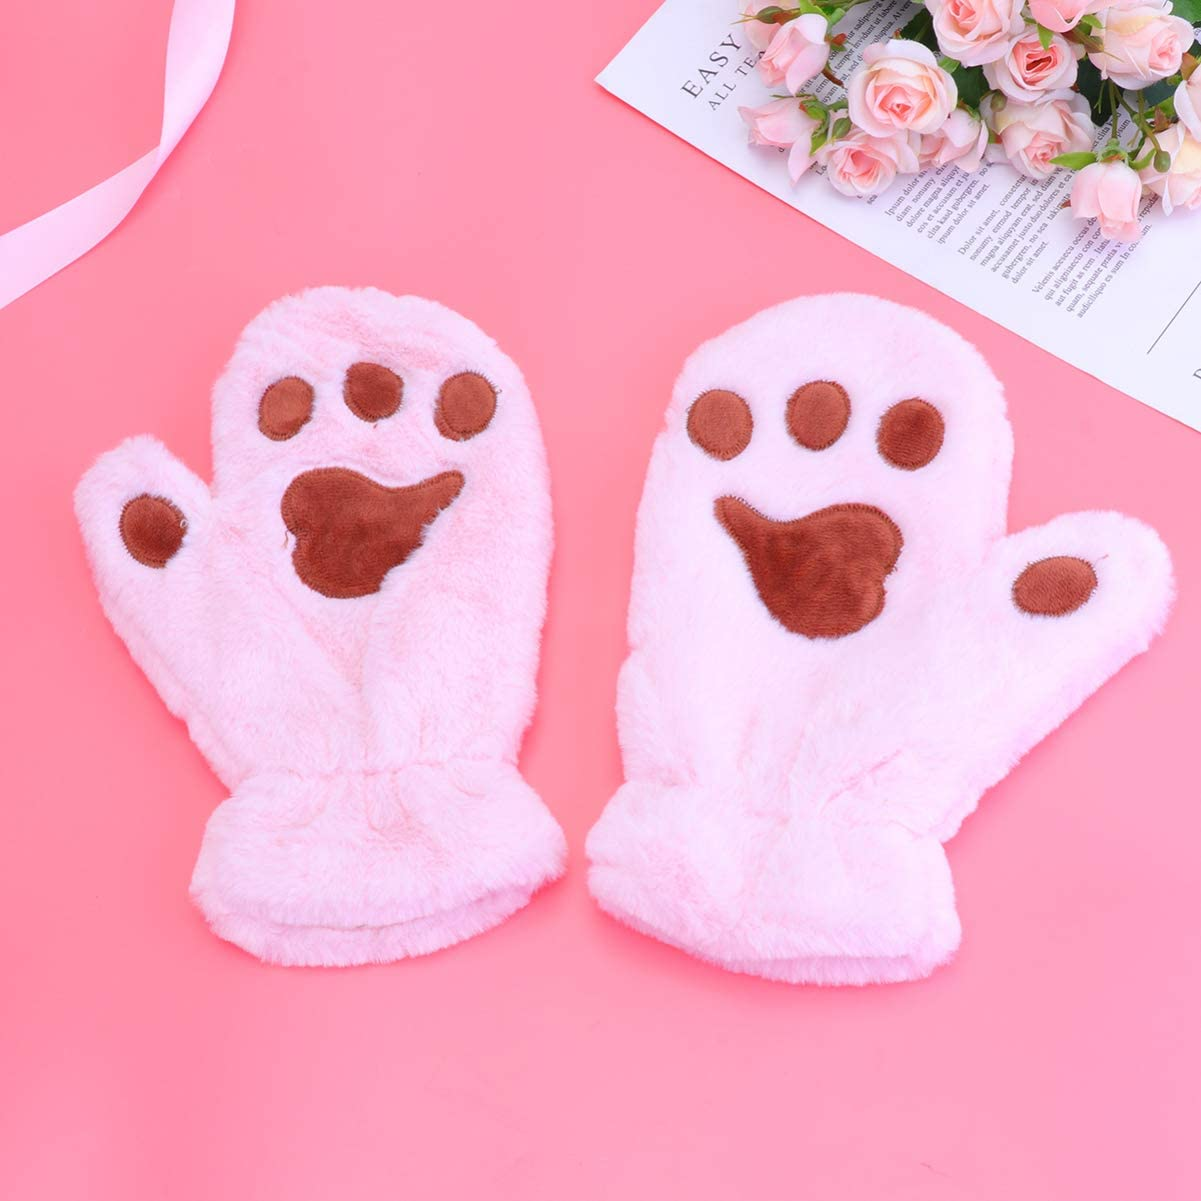 TENDYCOCO Cute Mittens Plush Paw Gloves Cat Claw Gloves for Kids Cold Weather Mittens Baby